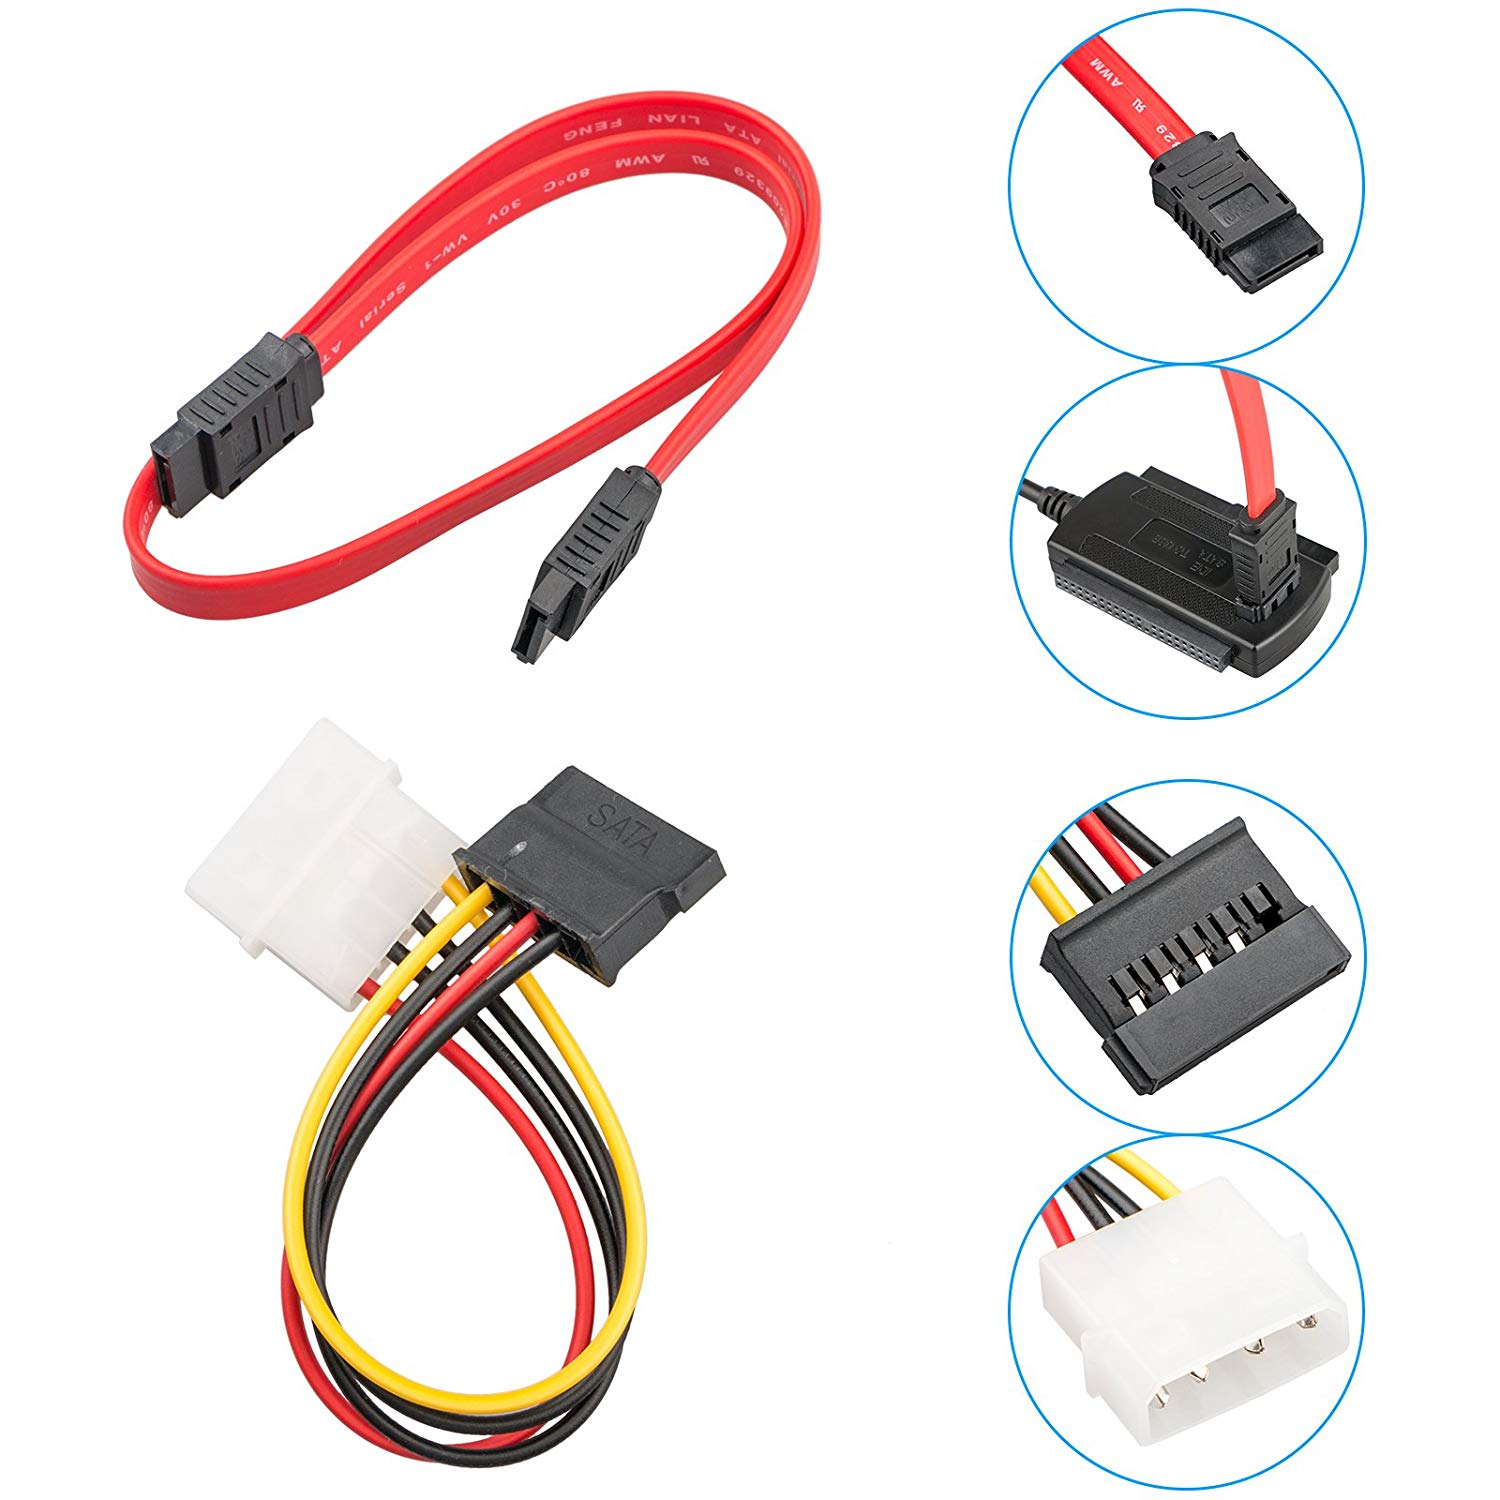 SATA/PATA/IDE to USB 2.0 Adapter Converter Cable for Hard ...